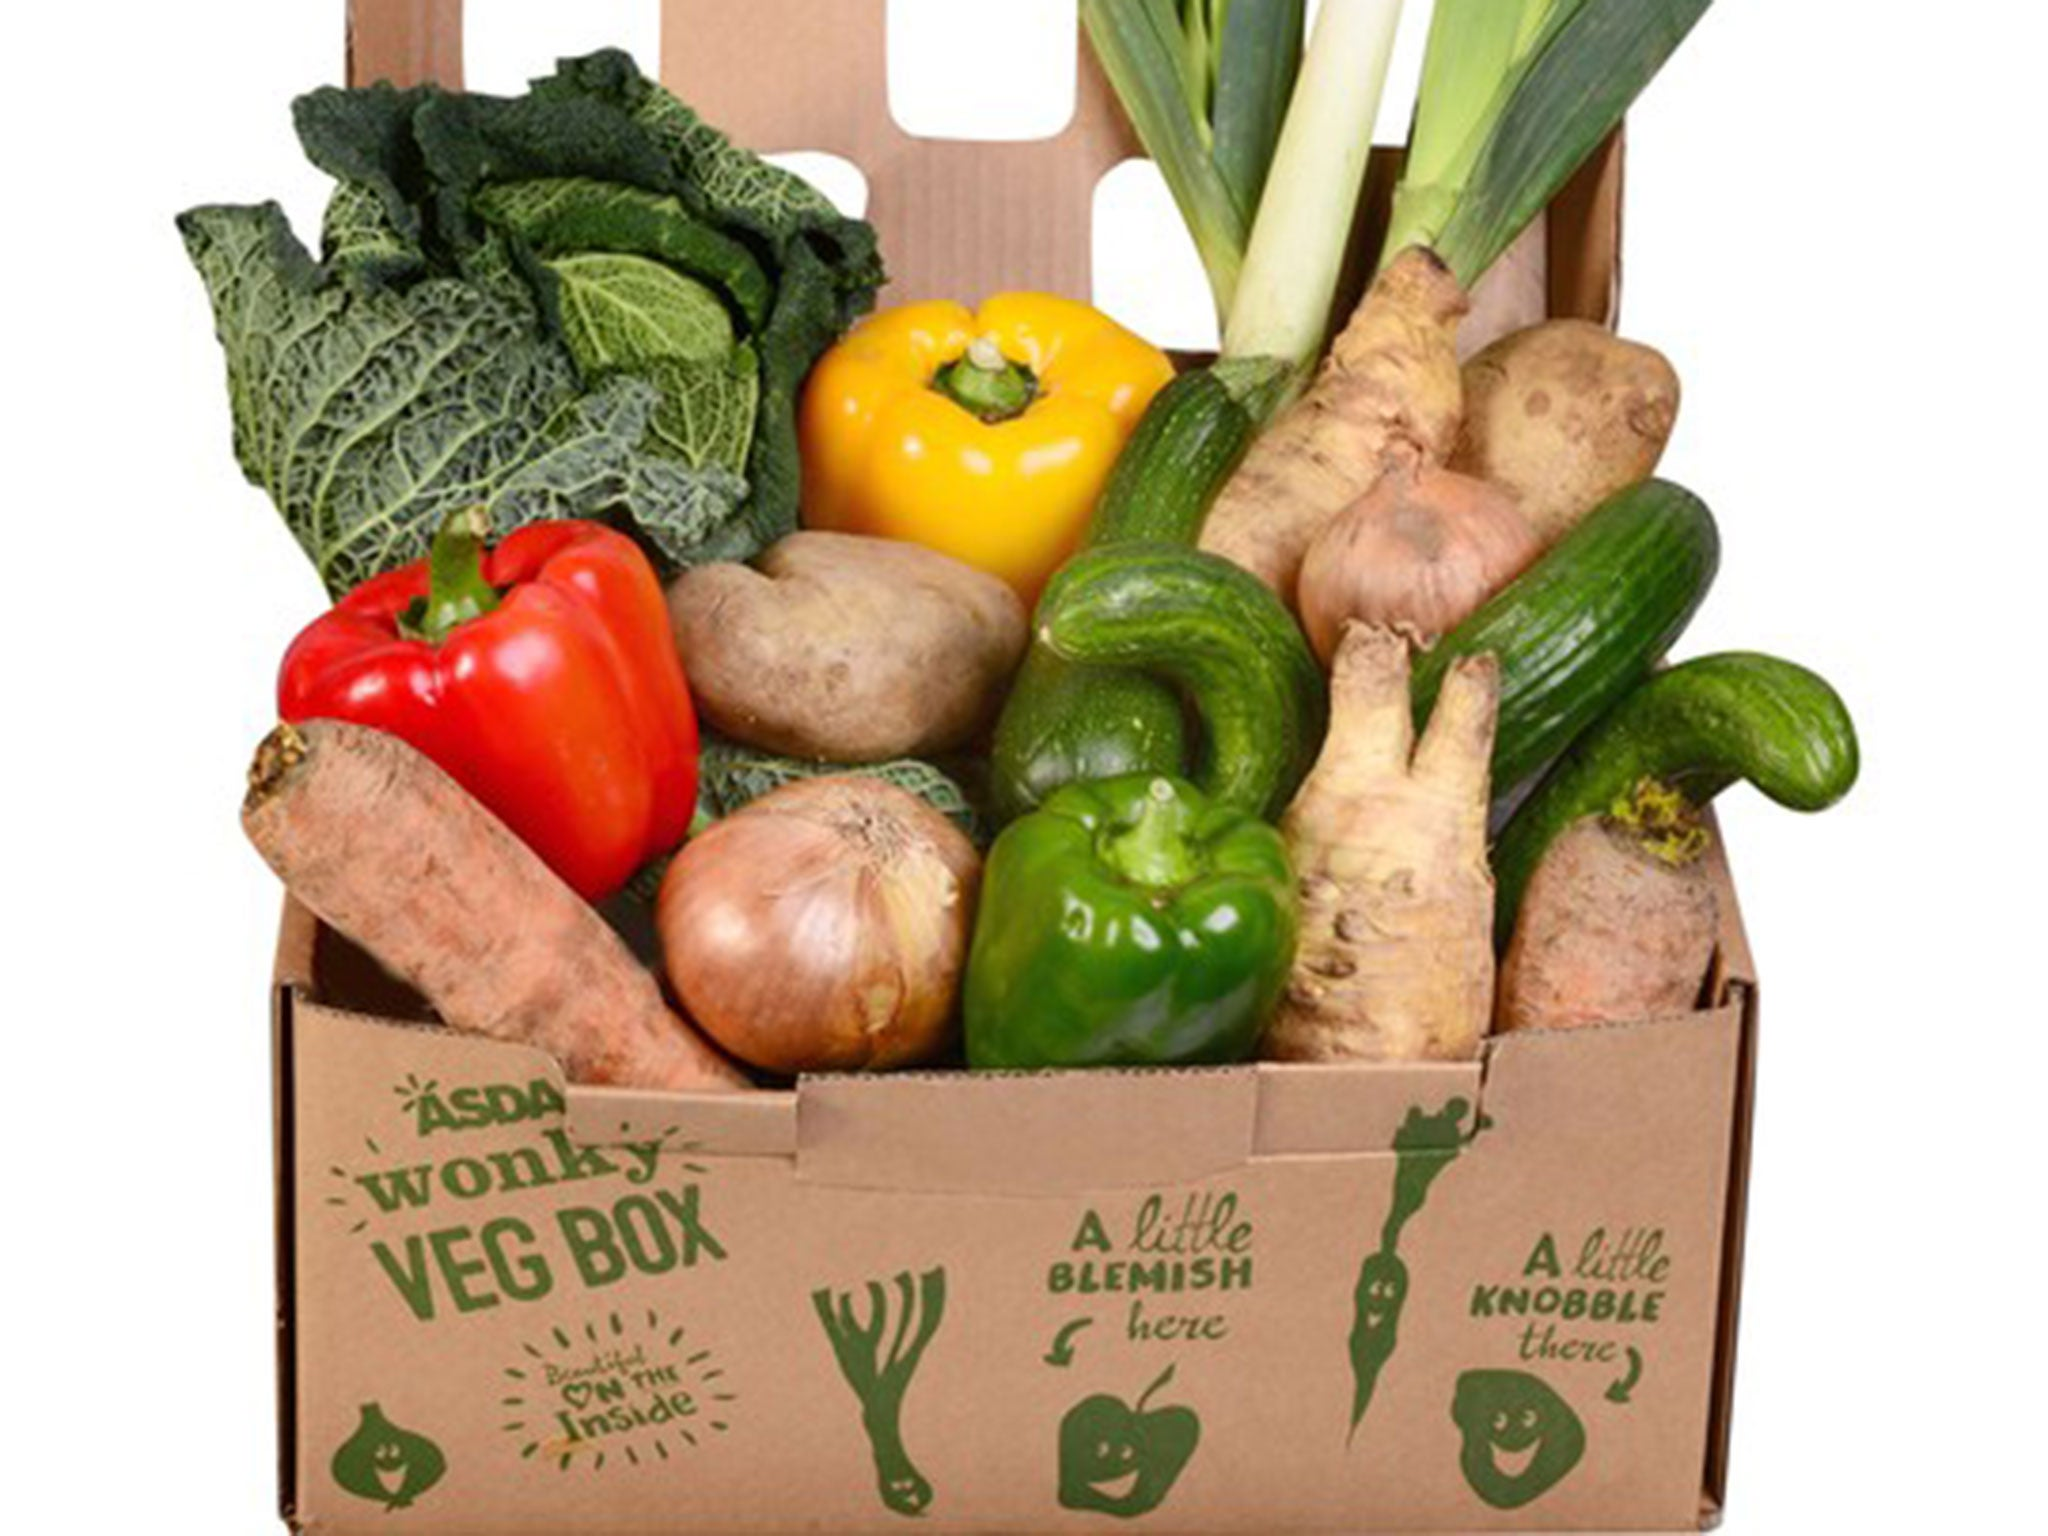 Asda To Become First UK Supermarket To Sell Wonky Veg Boxes | The  Independent